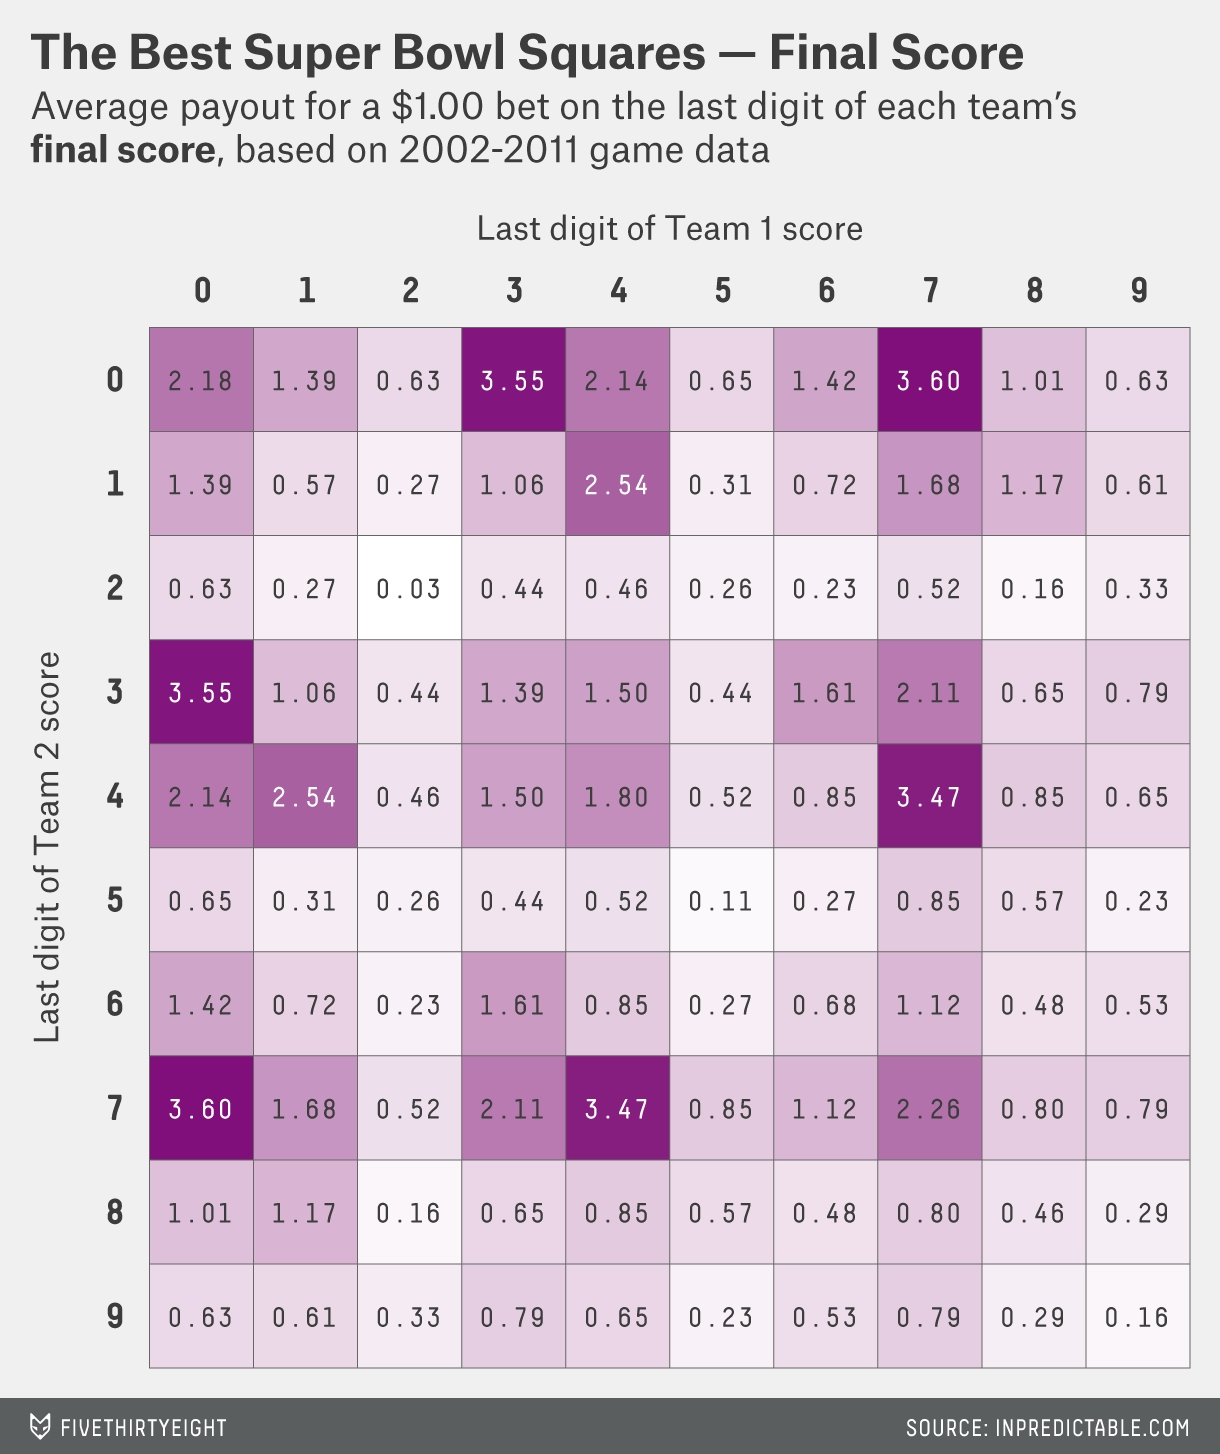 How Much Money You're Going To Win Playing Super Bowl pertaining to Super Bowl Squares Heat Map